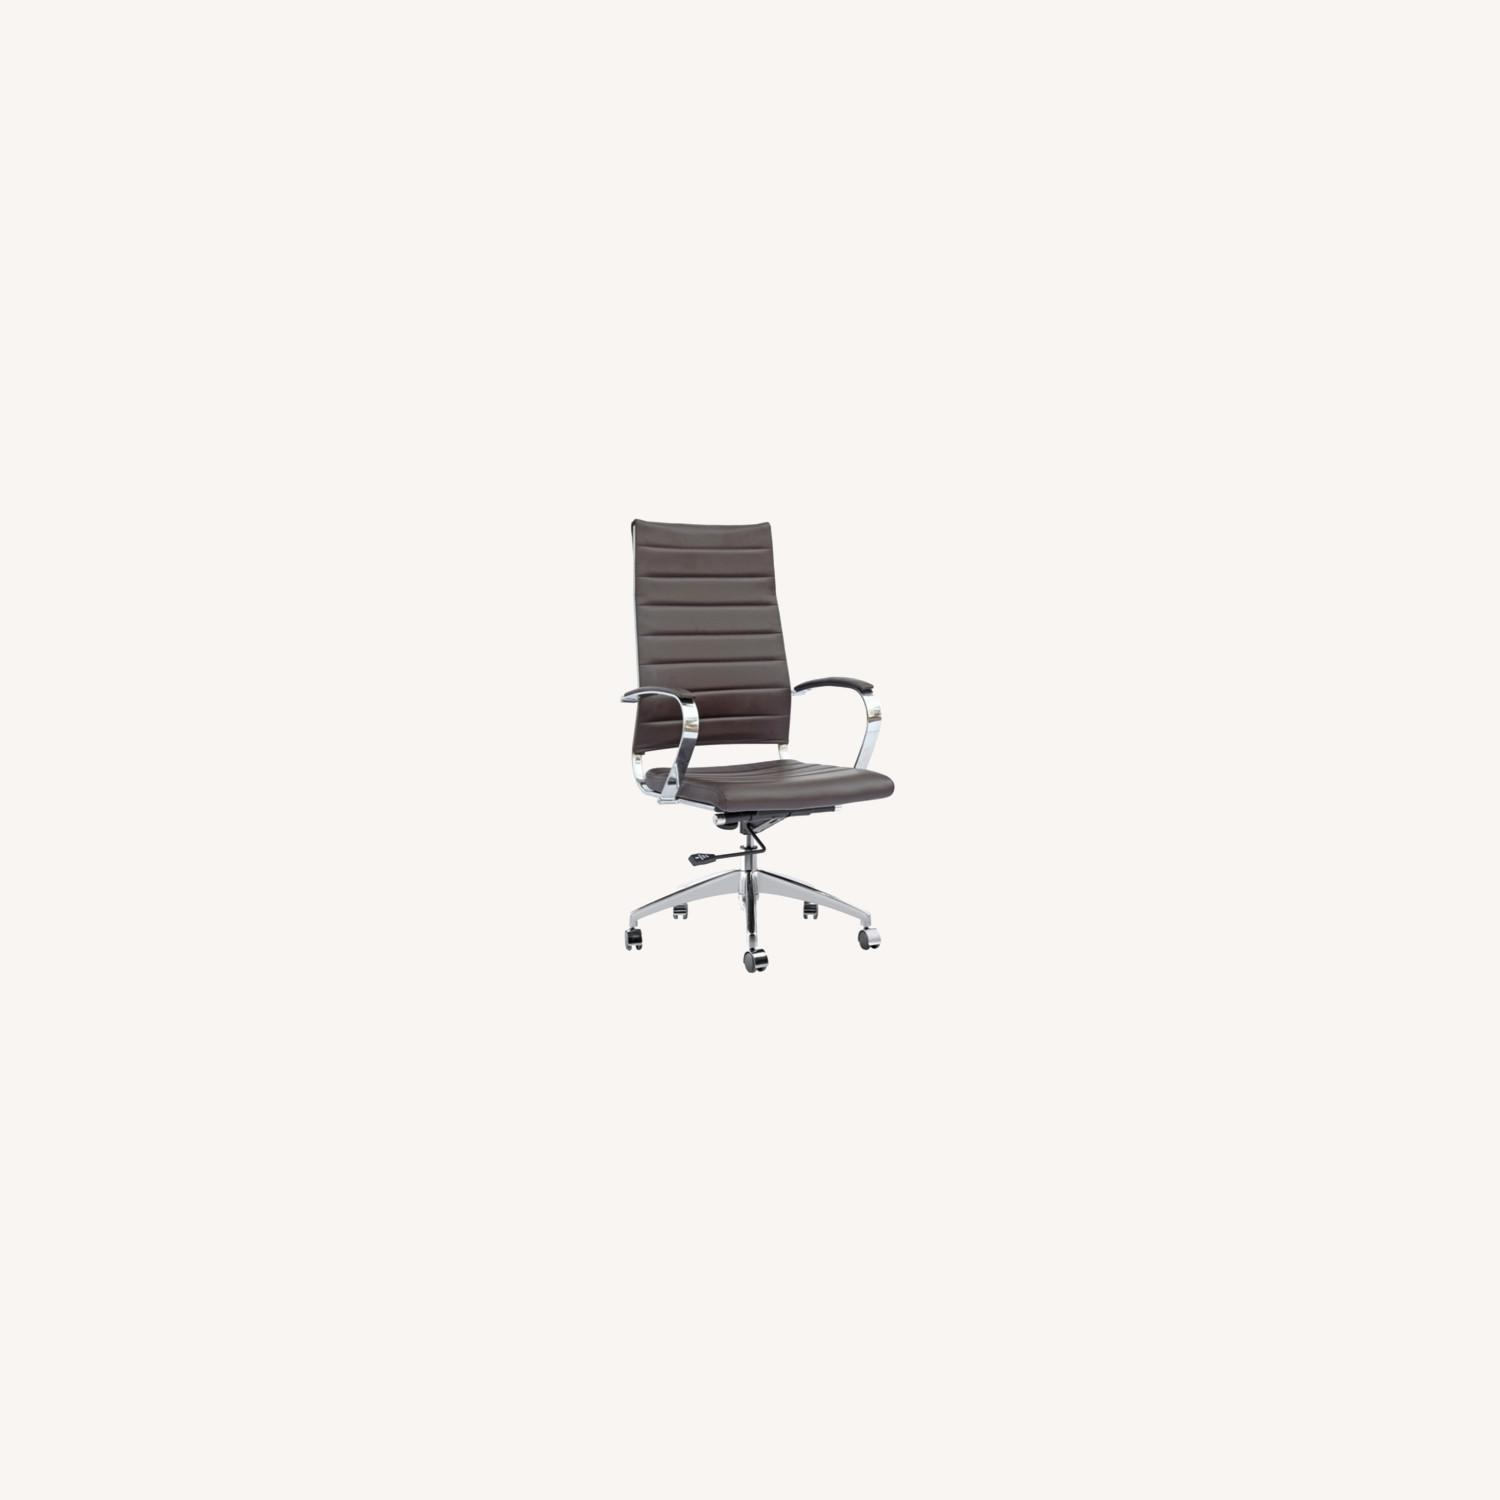 Office Chair W/ High Back Seat In Dark Brown - image-3